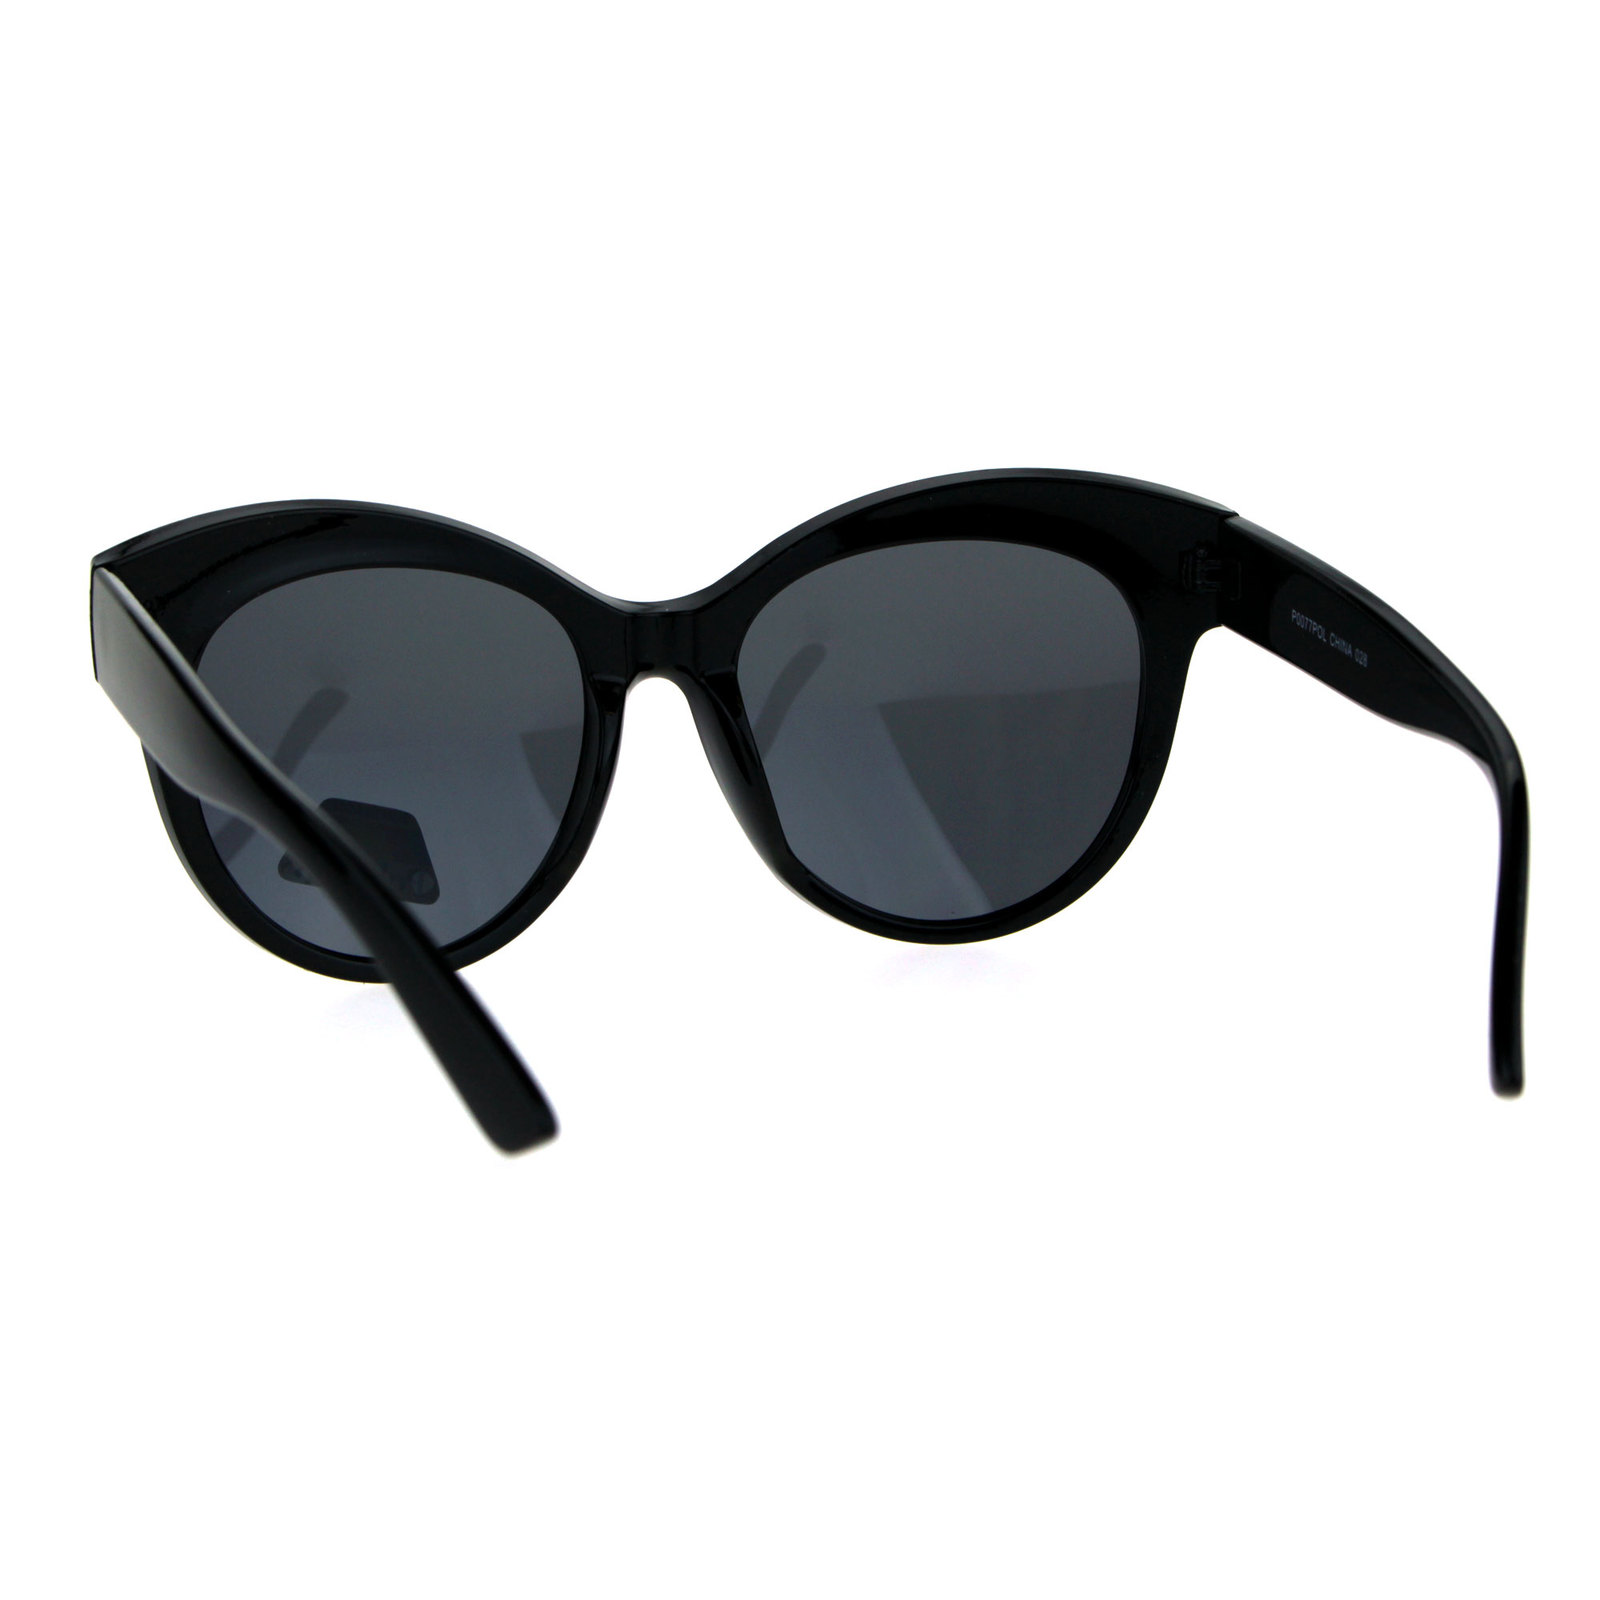 Antiglare Polarized Oversize Thick Plastic Cat Eye Diva Sunglasses